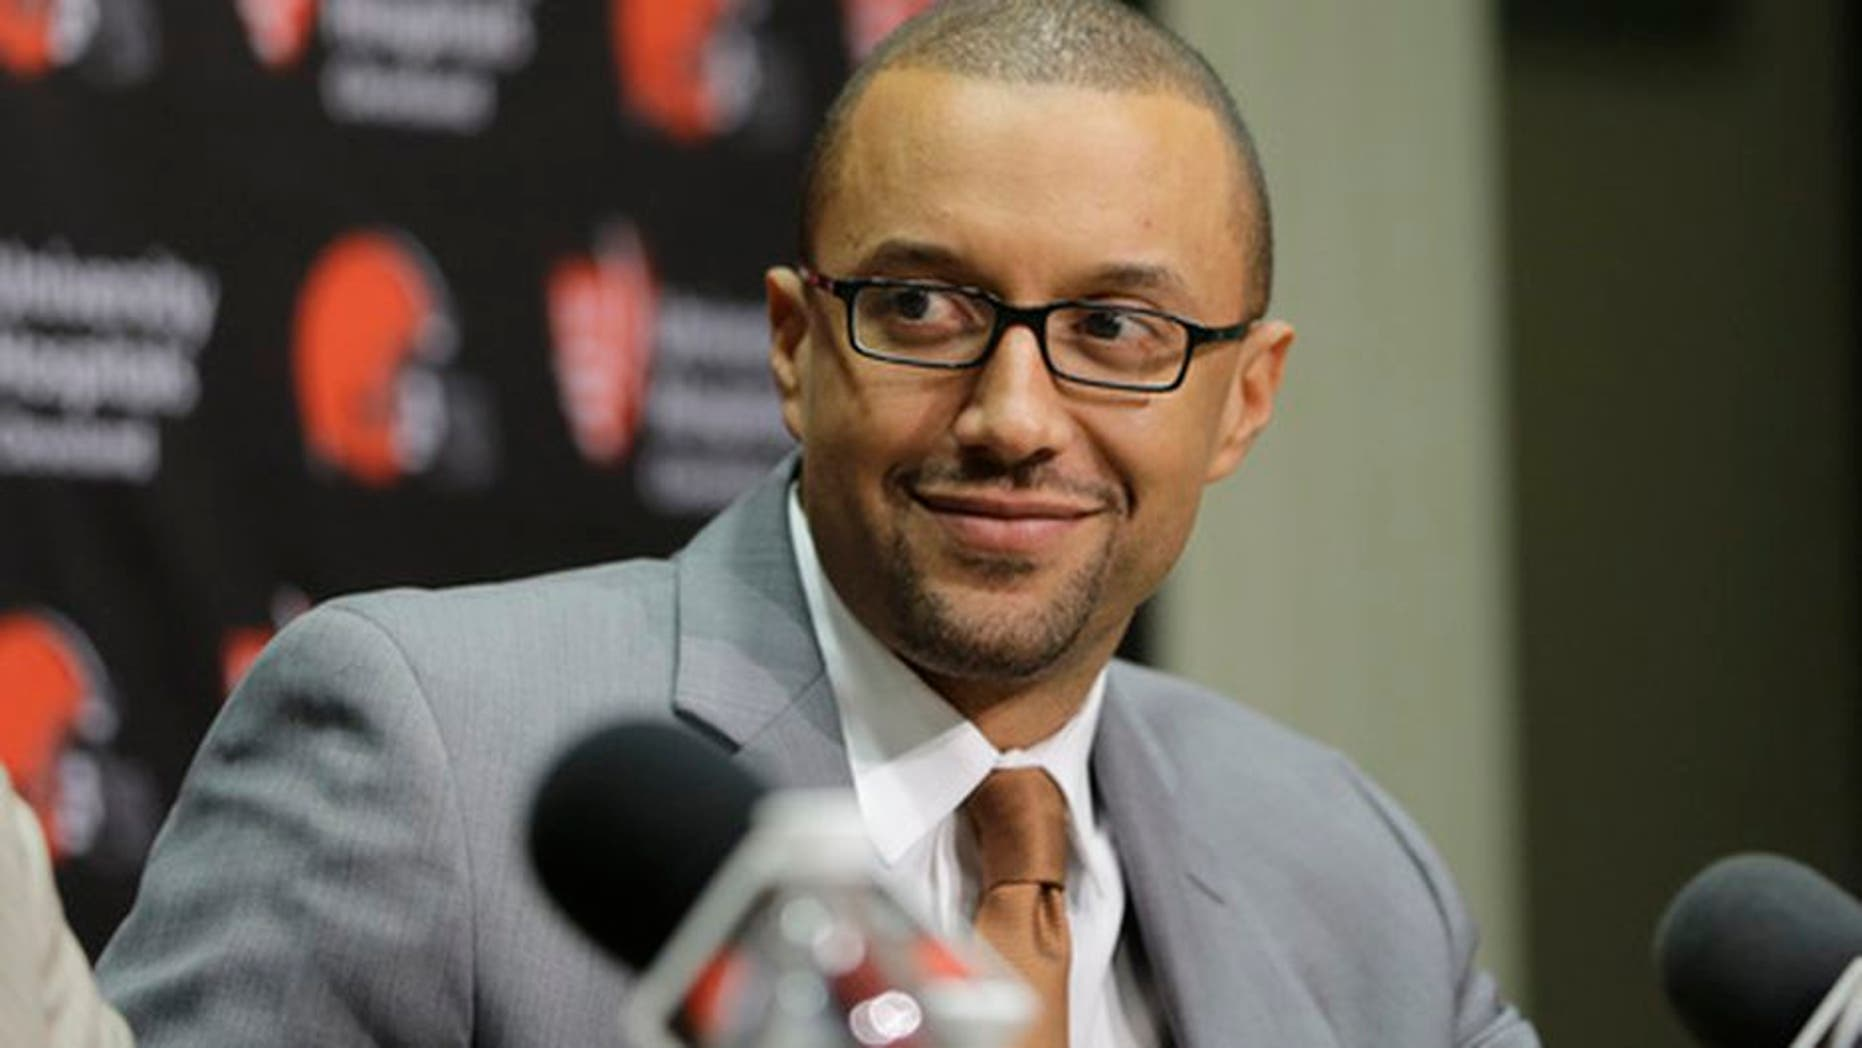 """FILE - In this Jan. 13, 2016, file photo, Cleveland Browns Executive Vice President of Football Operations, Sashi Brown, addresses the media during a news conference in Berea, Ohio. The Browns are inclined to keep the No. 1 overall pick in next weeks NFL draft despite getting offers for it. Sashi Brown said Wednesday, April 19, 2017, that the Browns feel really good about drafting No. 1."""" (AP Photo/Tony Dejak, File)"""